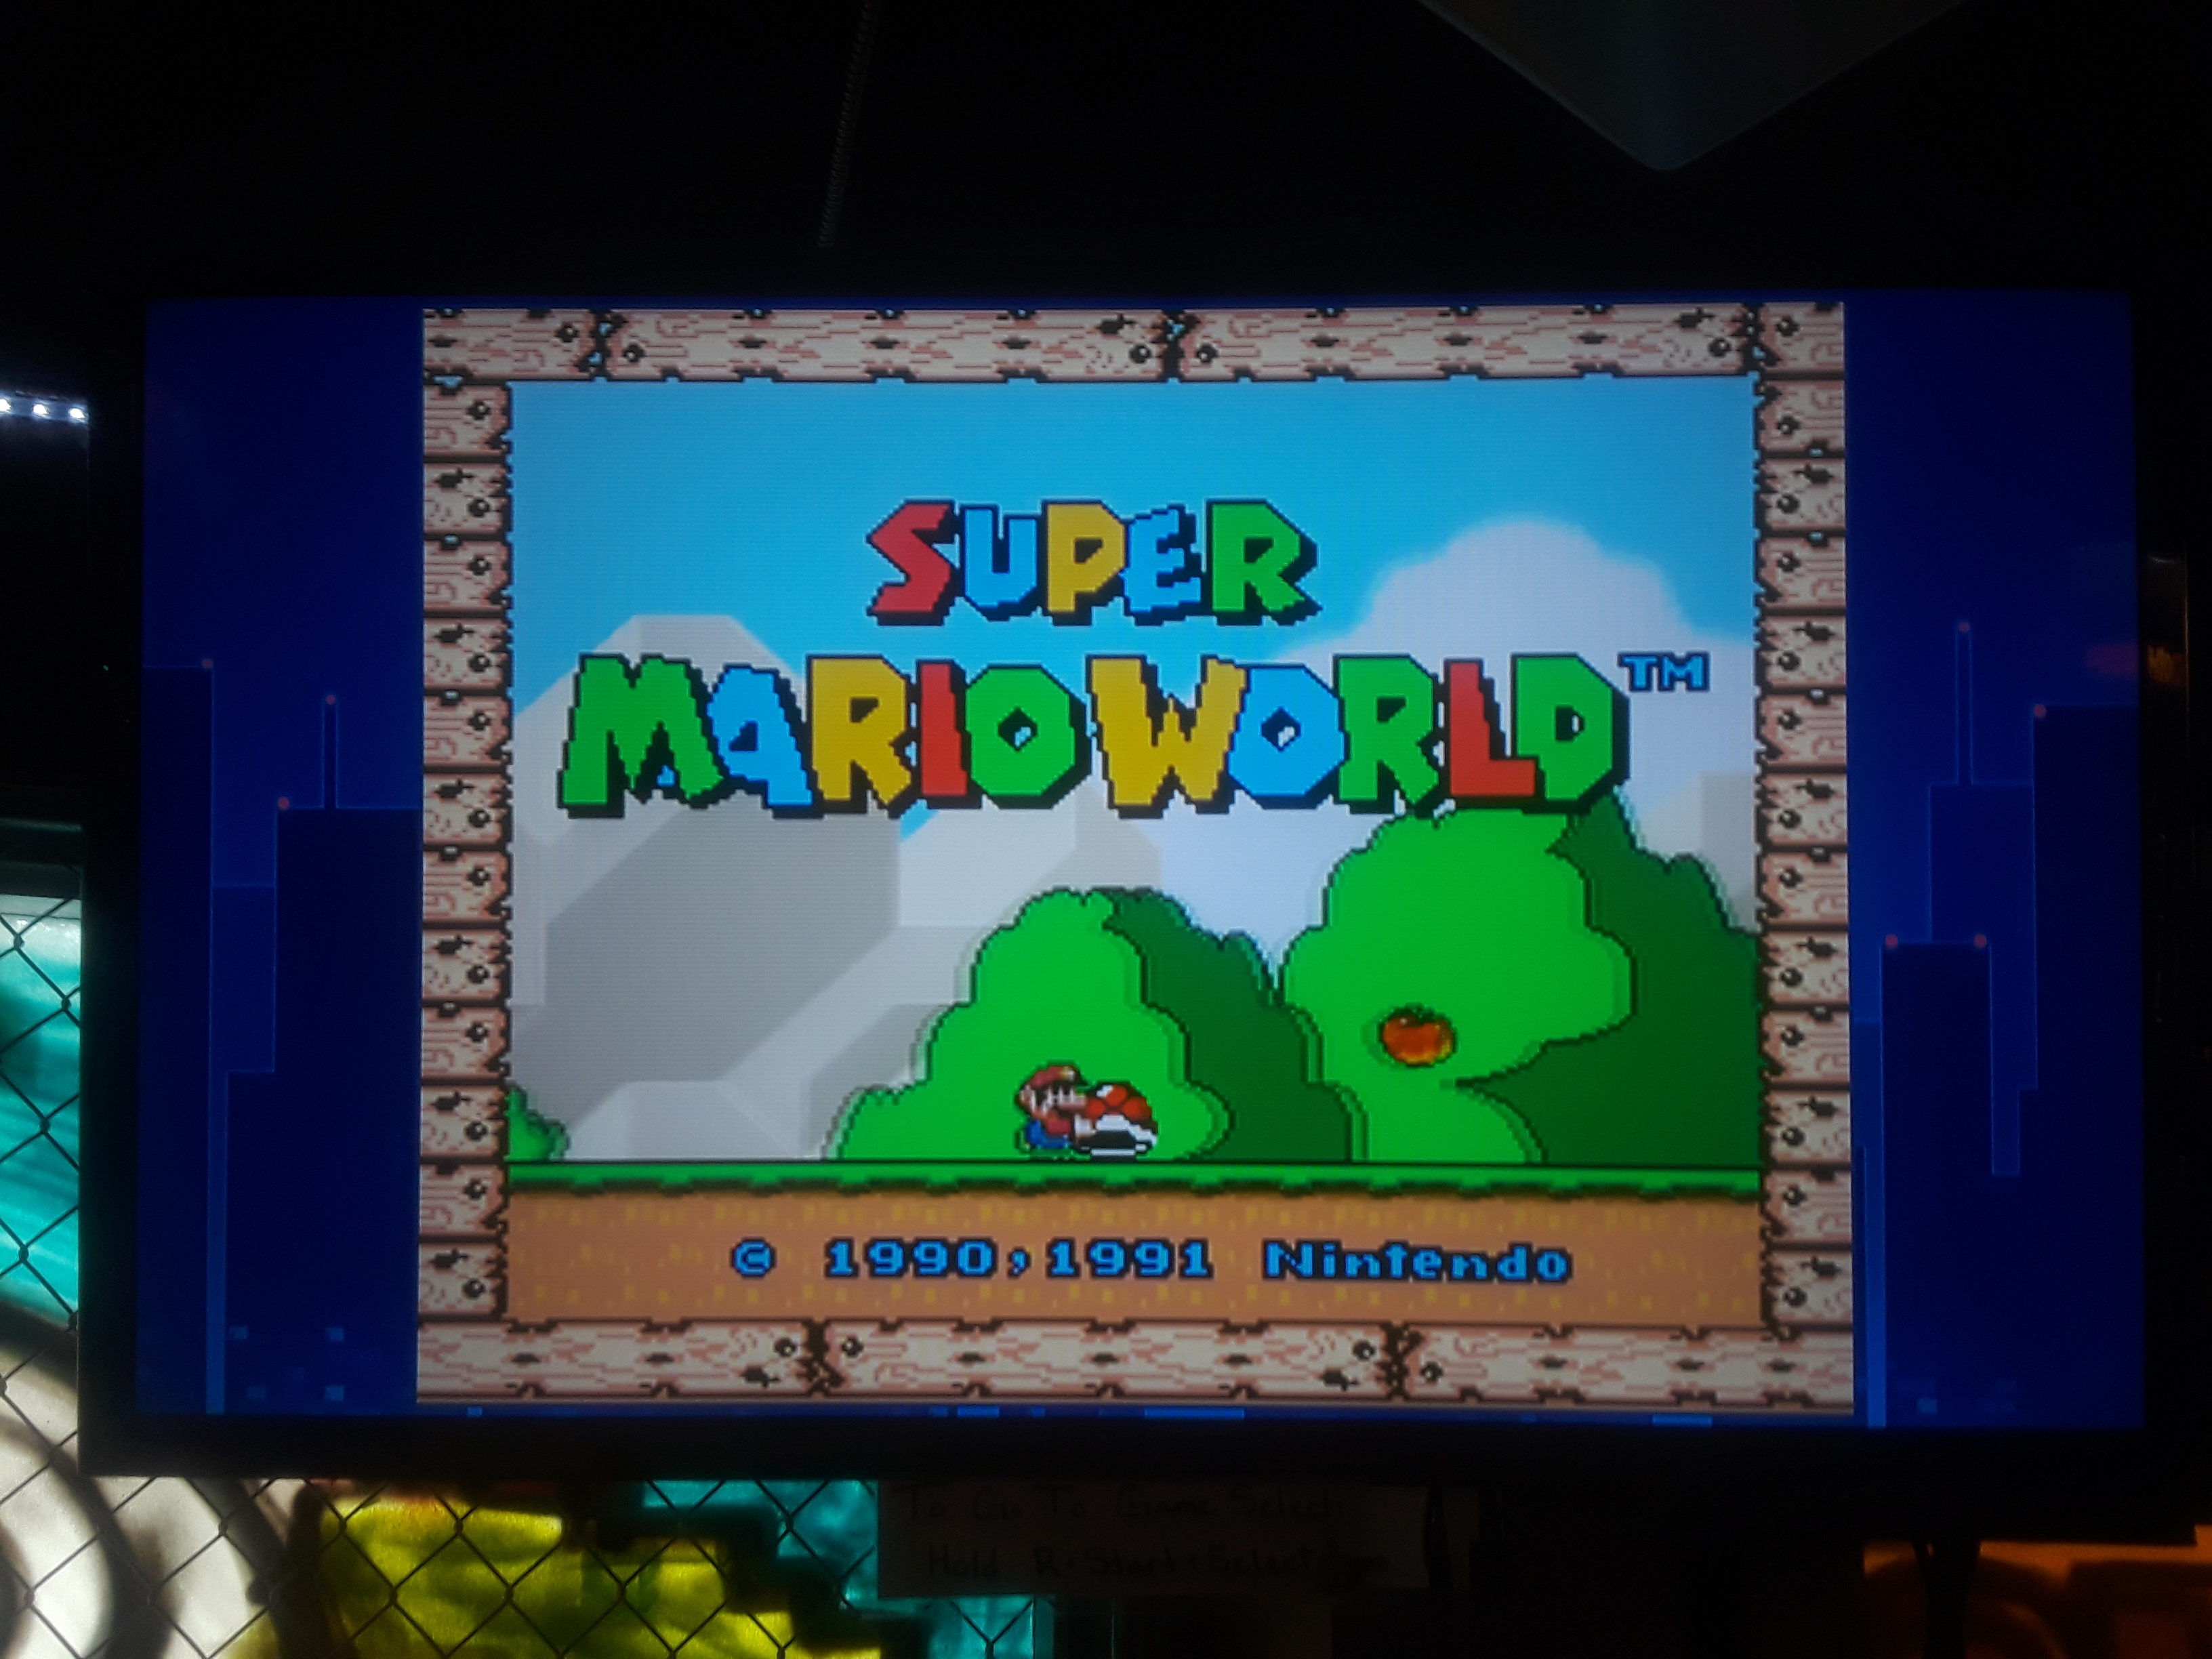 Super Mario World 74,800 points